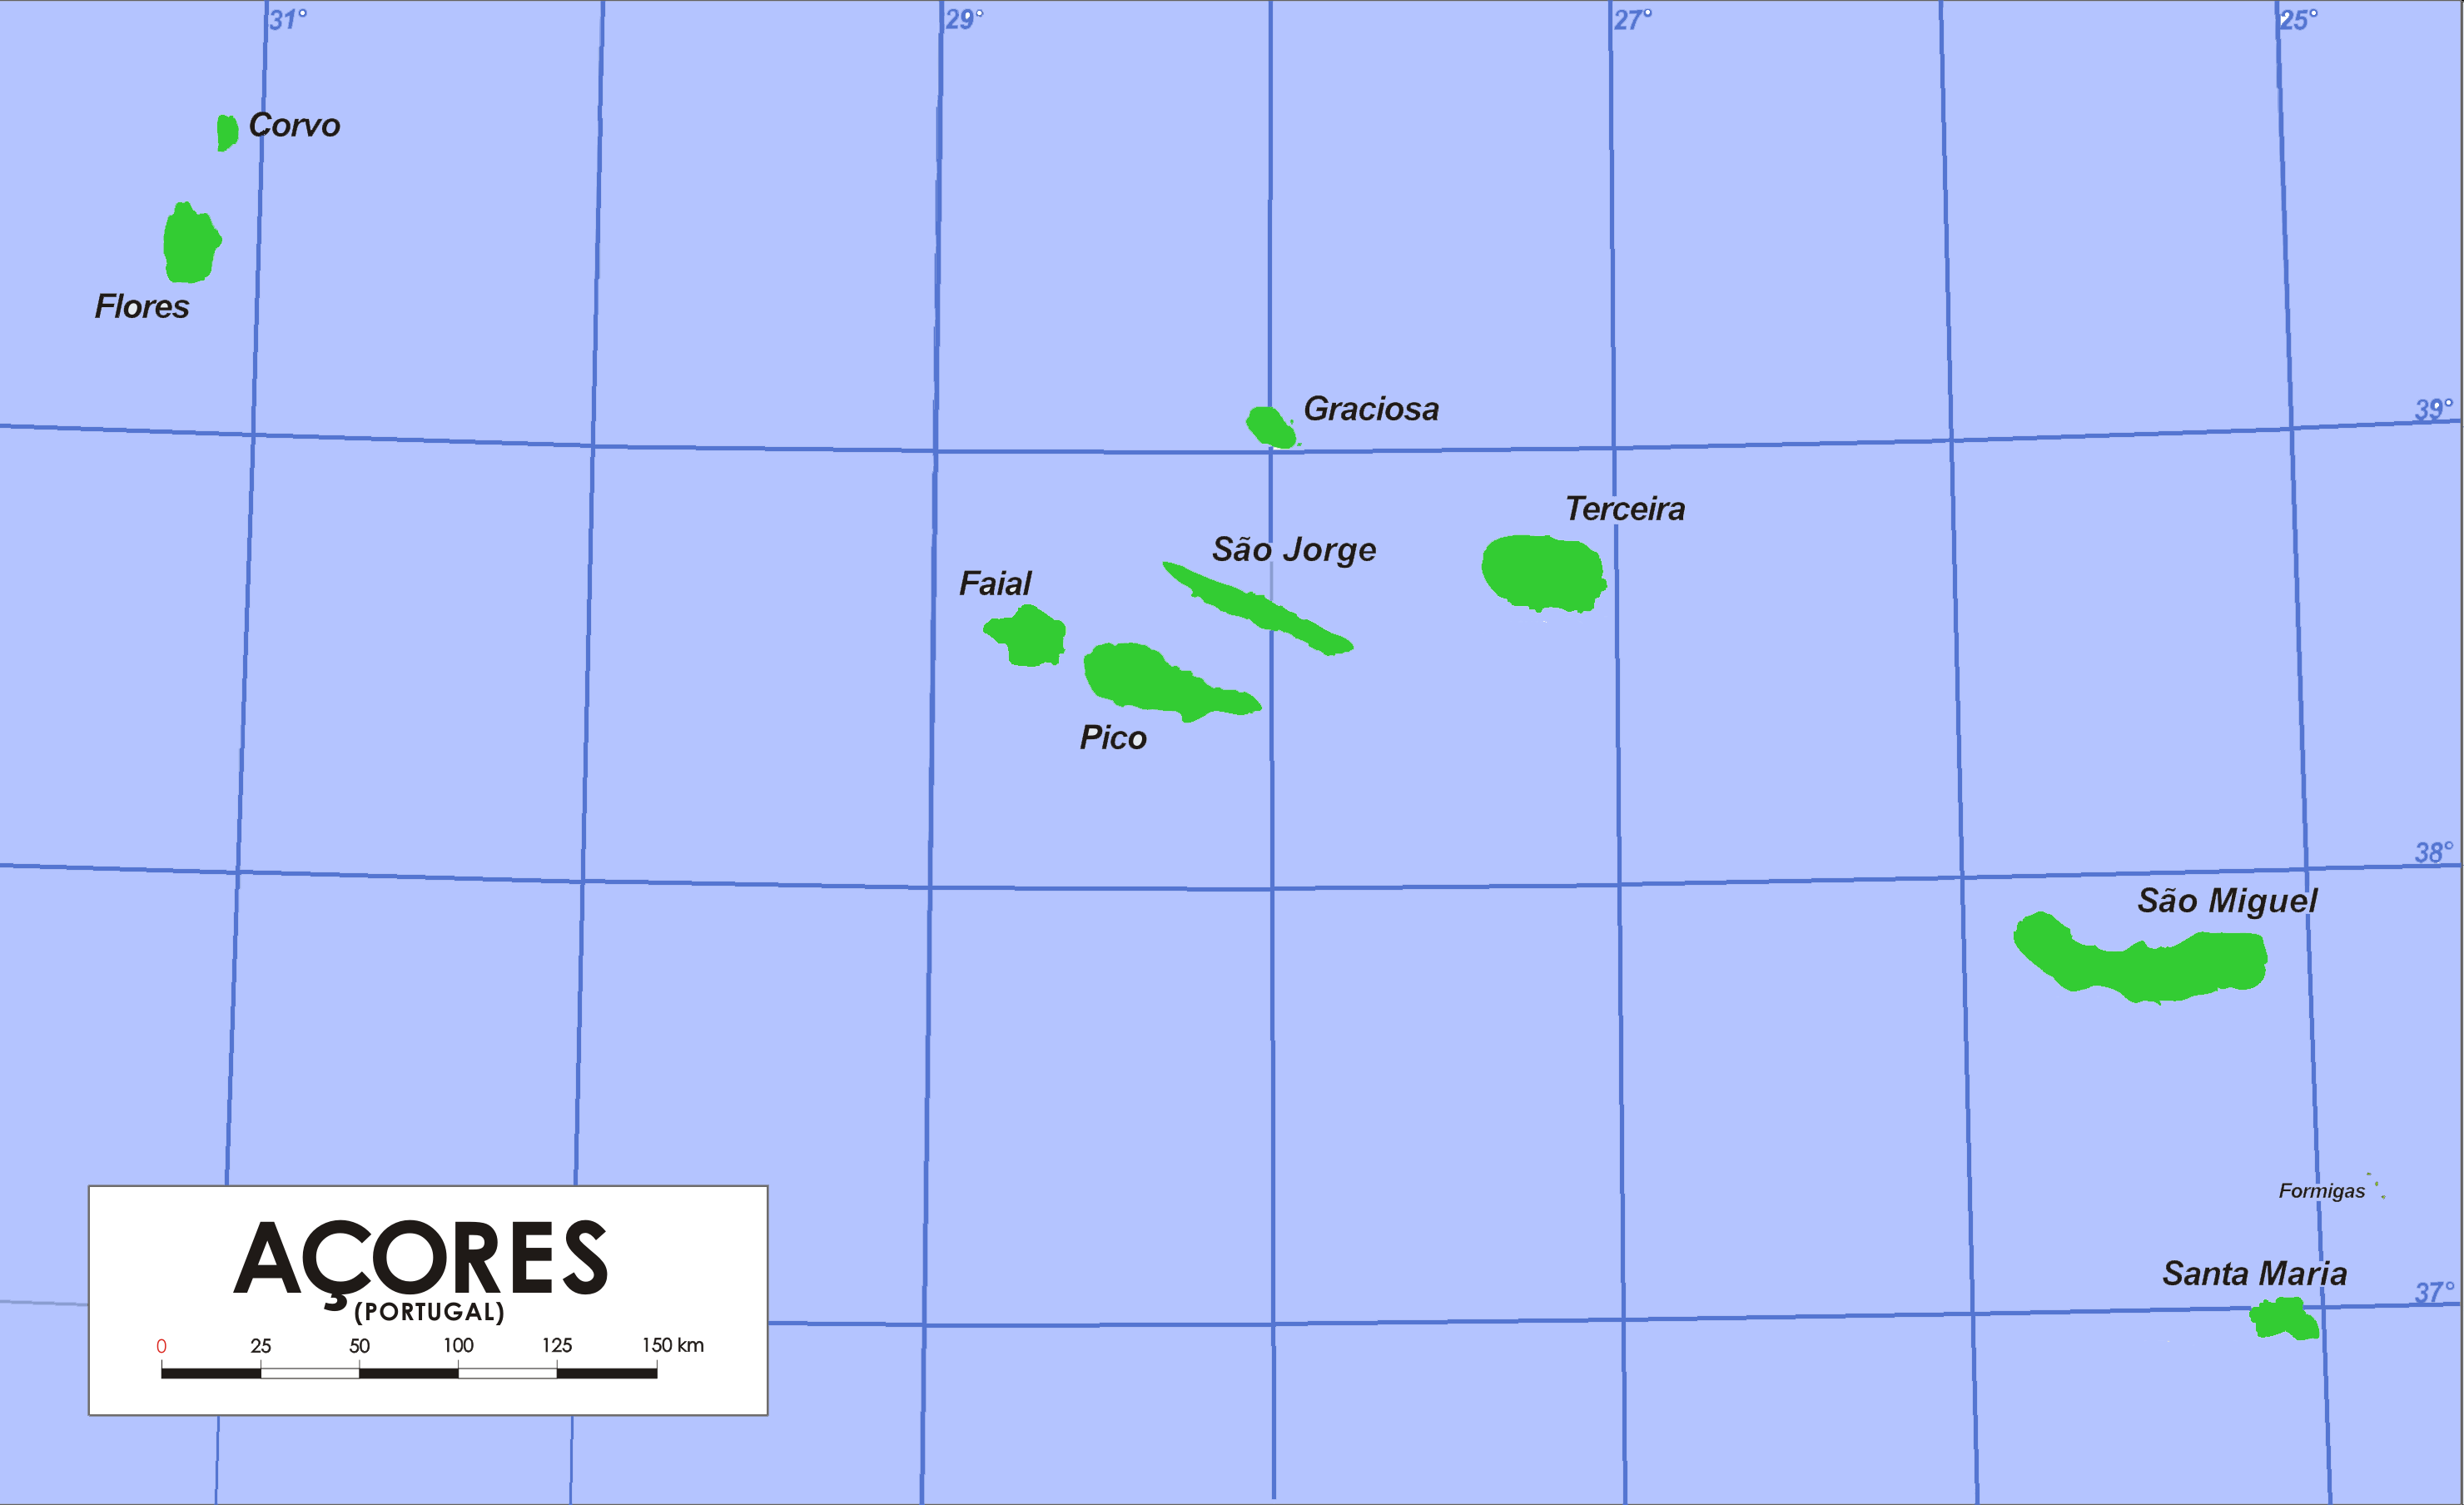 Map Of Azores File:Azores Base Map.png   Wikimedia Commons Map Of Azores